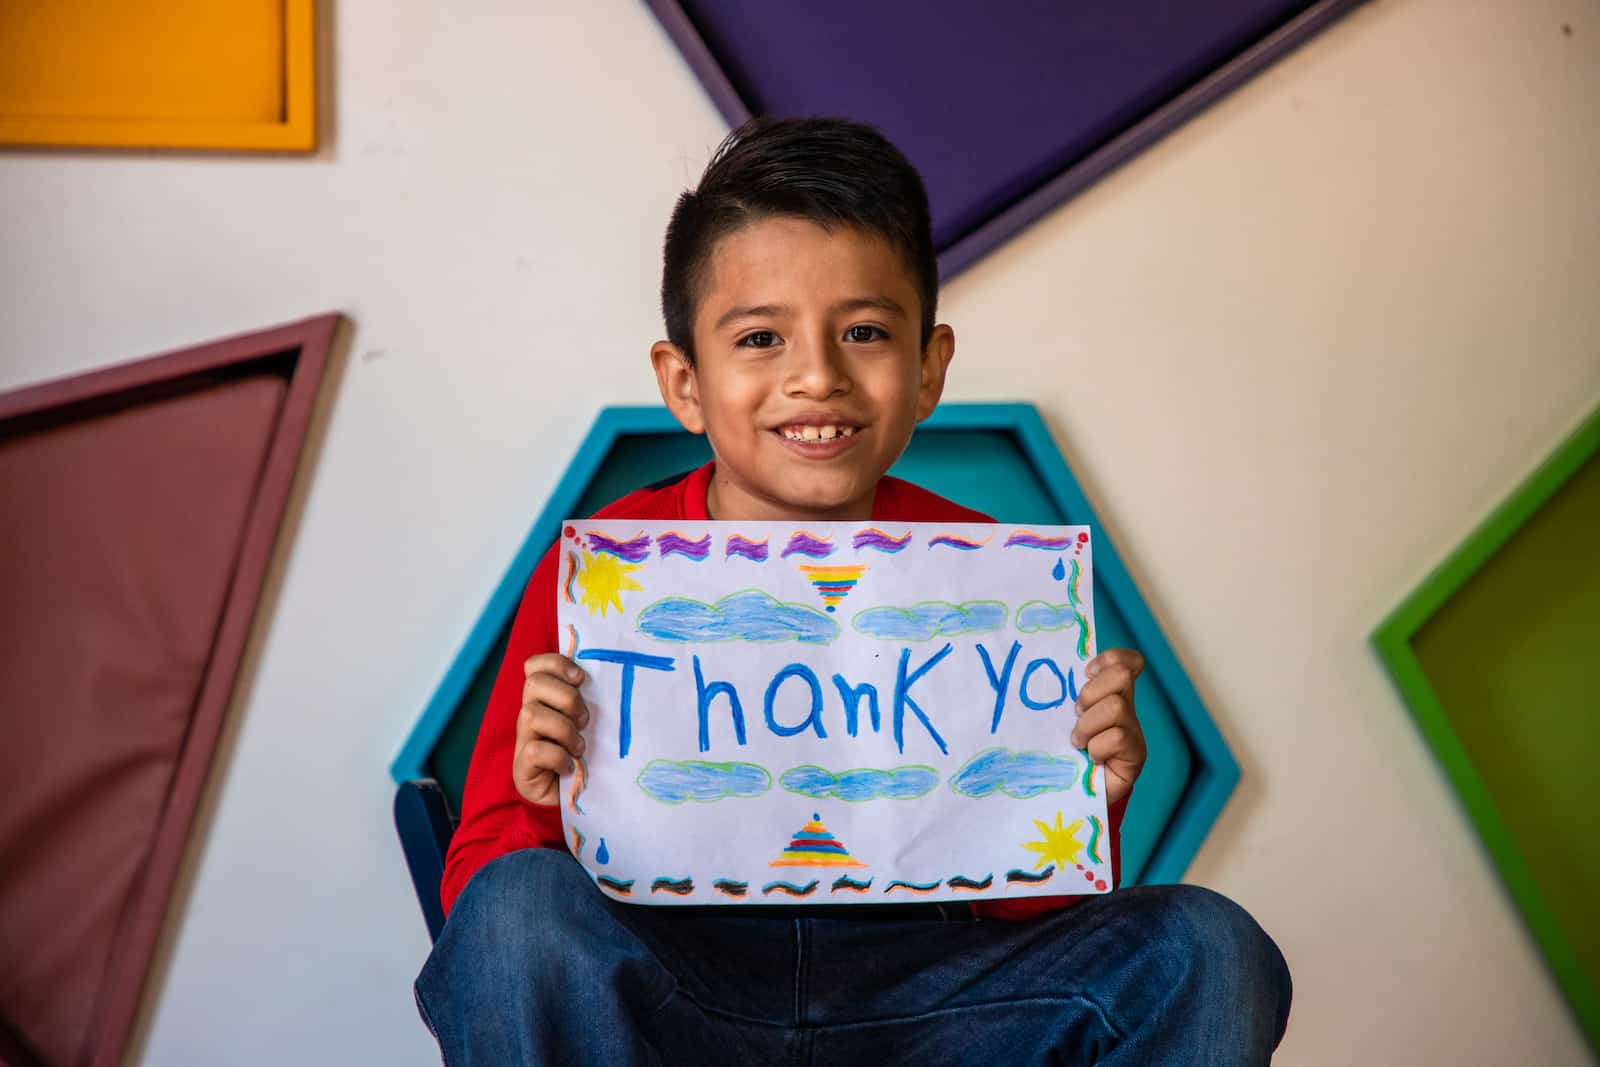 A boy holds a sign that says thank you